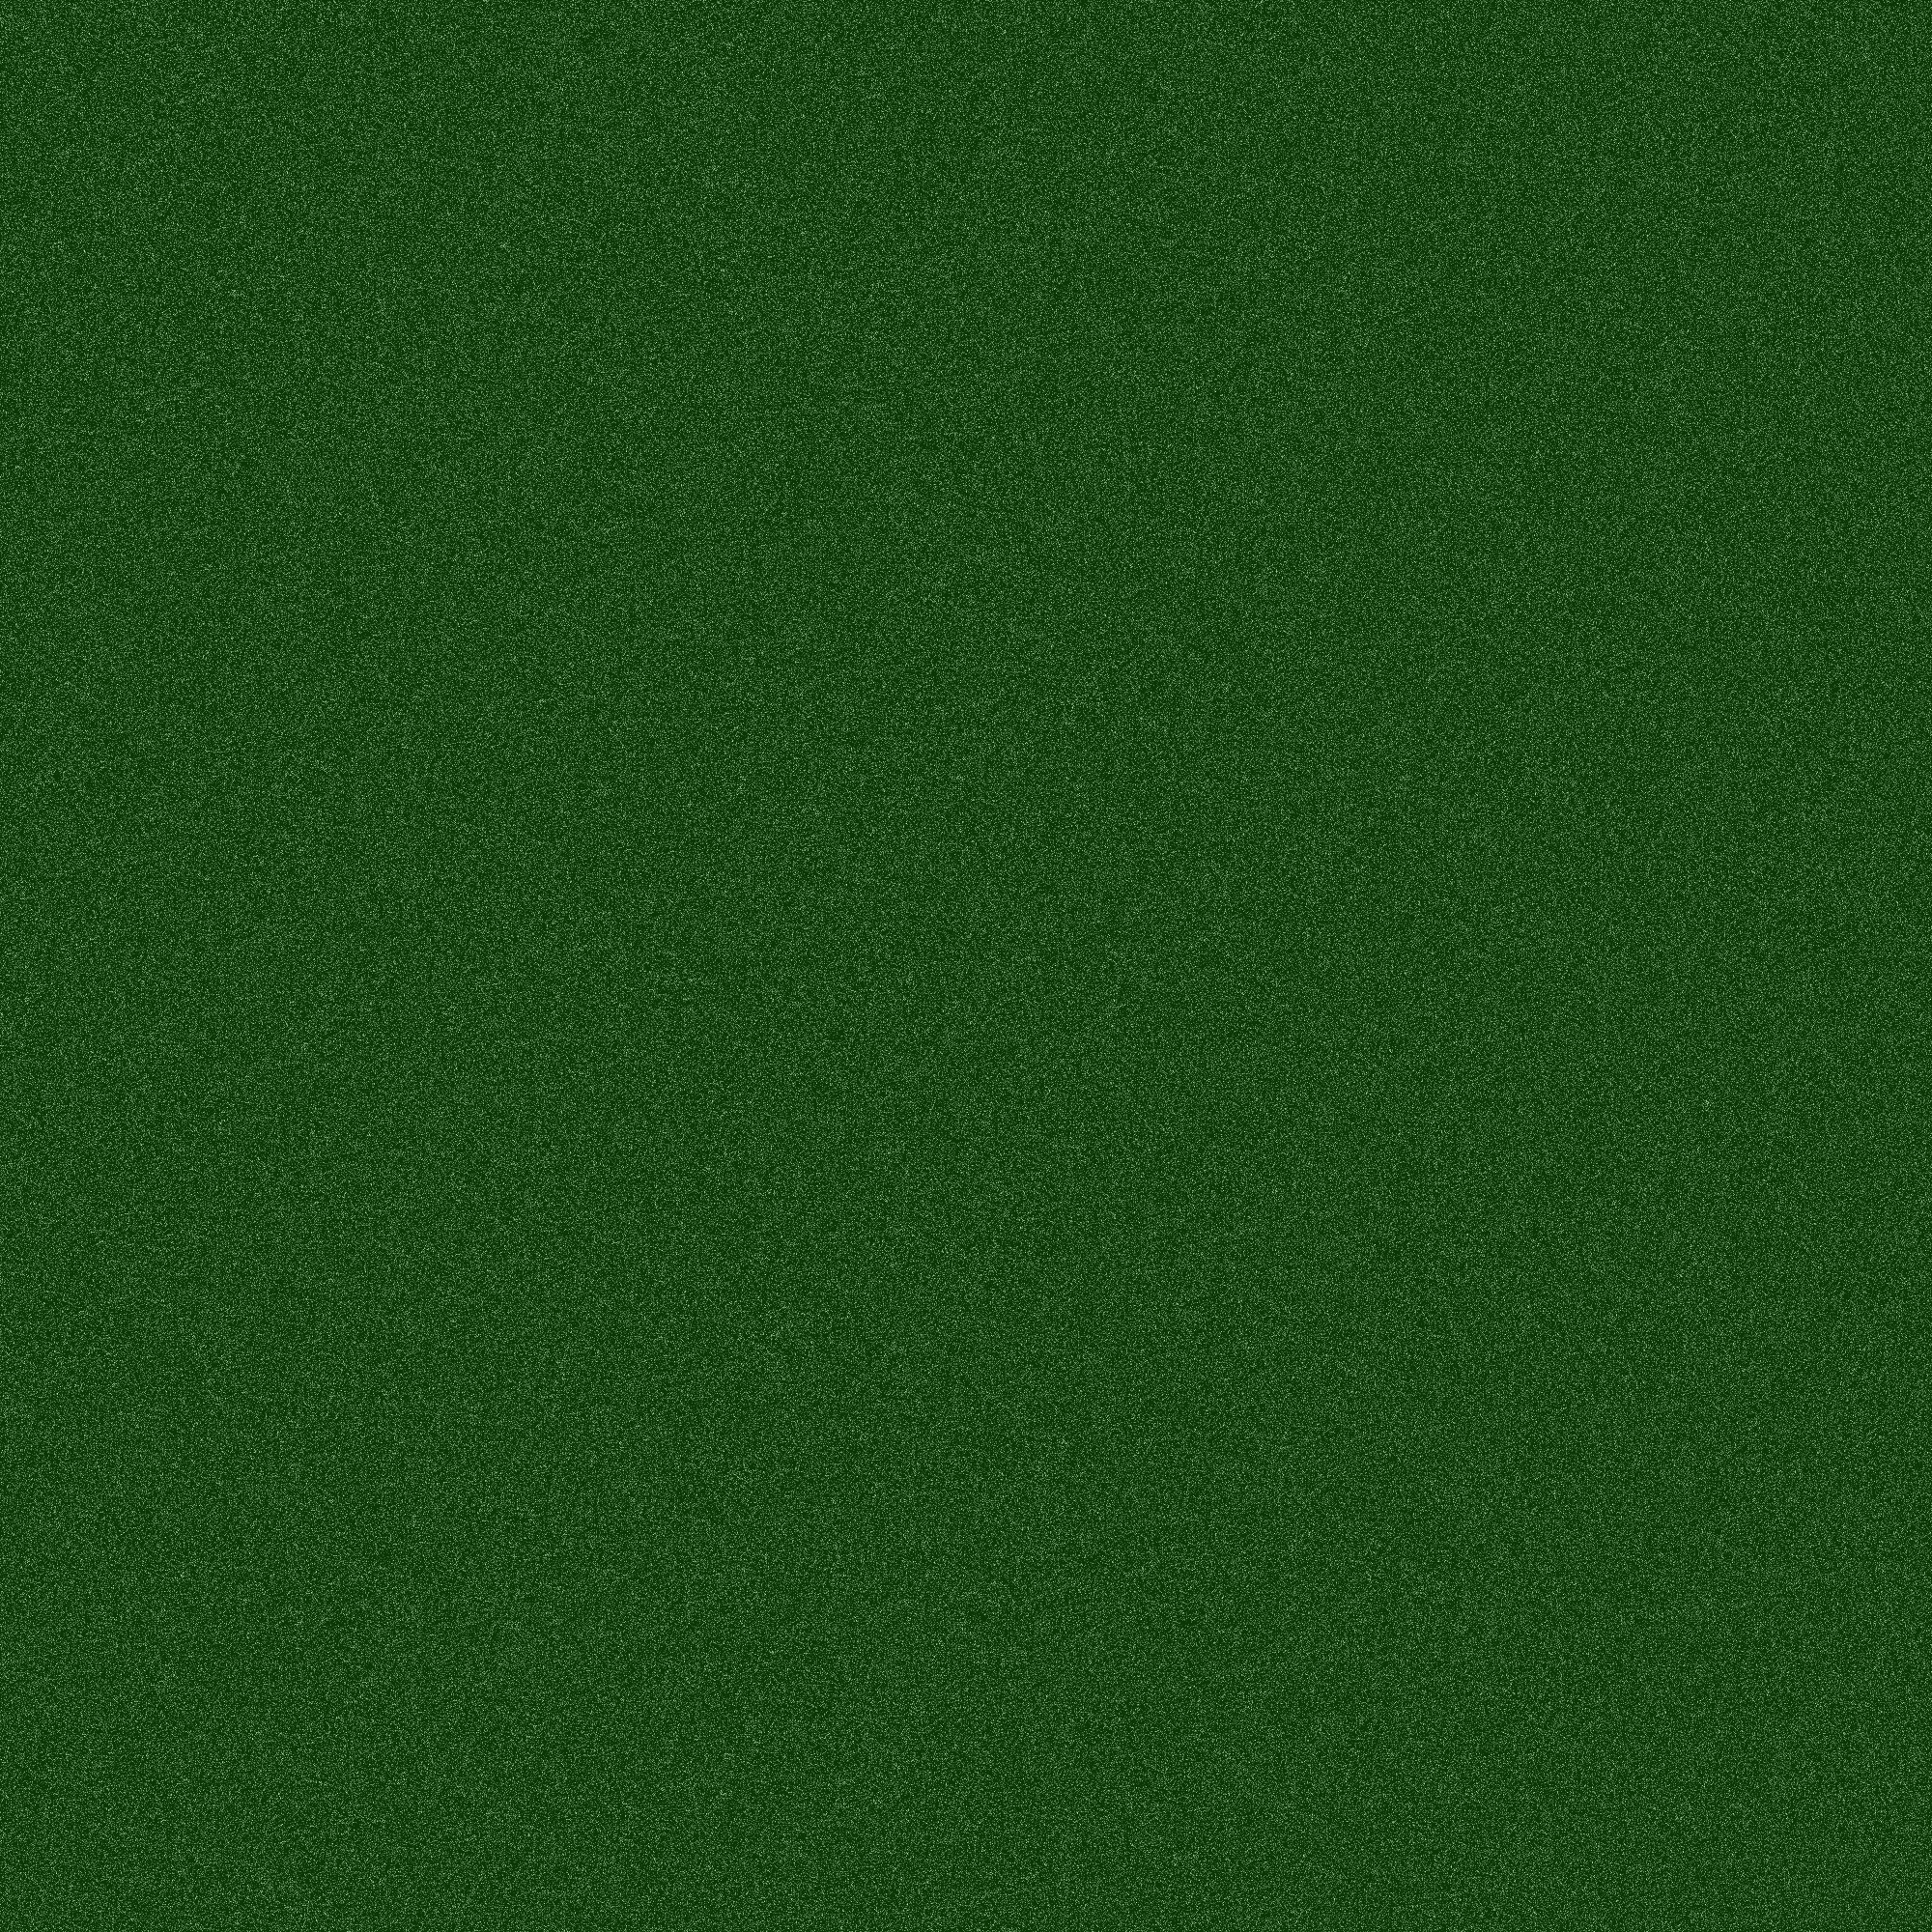 Dark Green Iphone Wallpaper Wallpapersafari